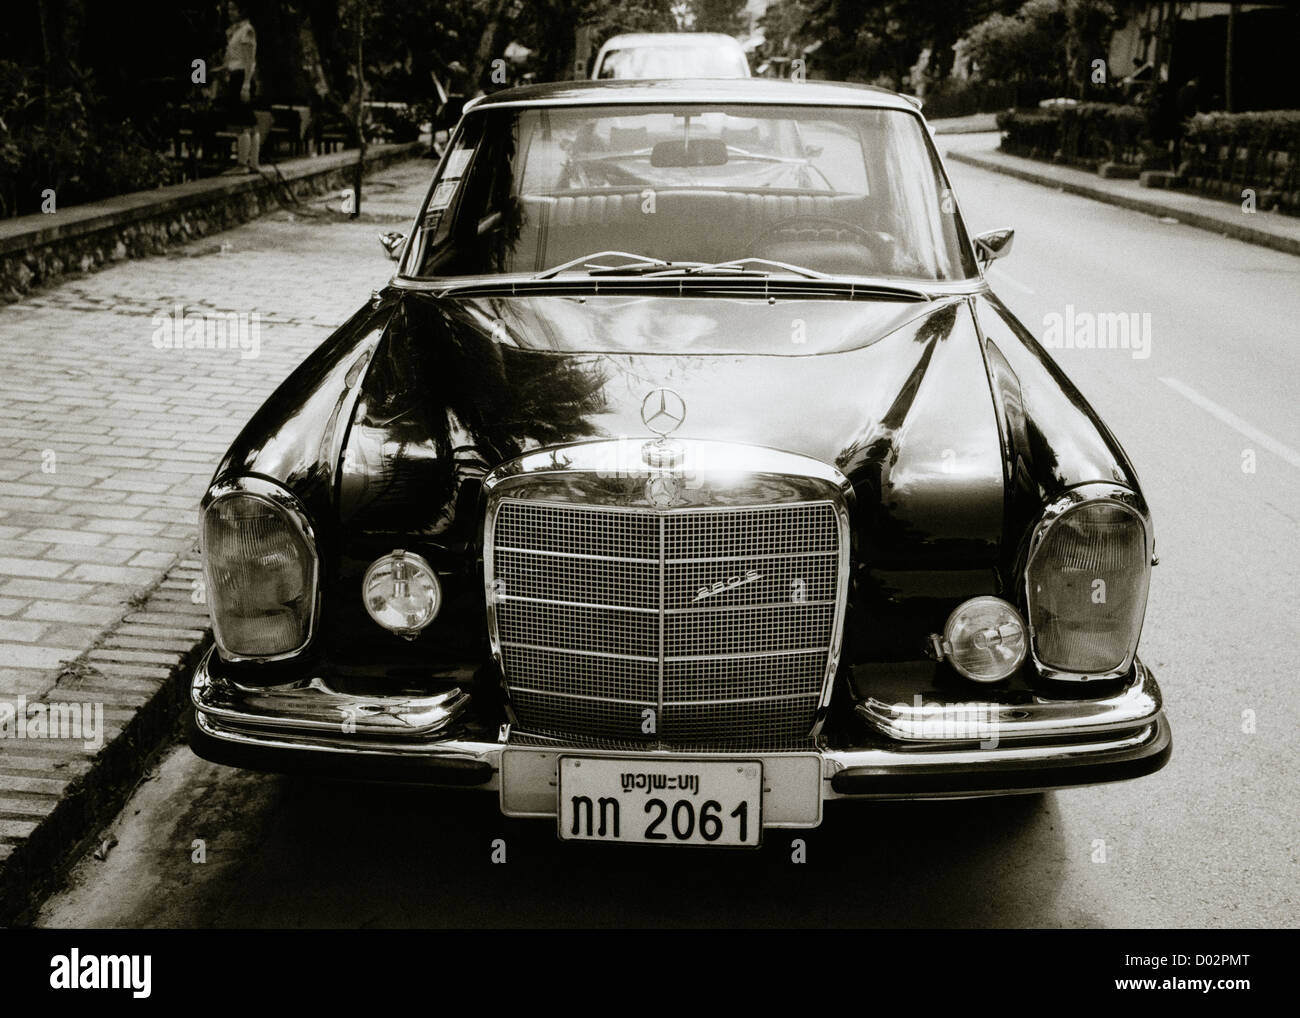 Classic Vintage Car. A classic Mercedes Benz car. Cars Vehicle Stock ...